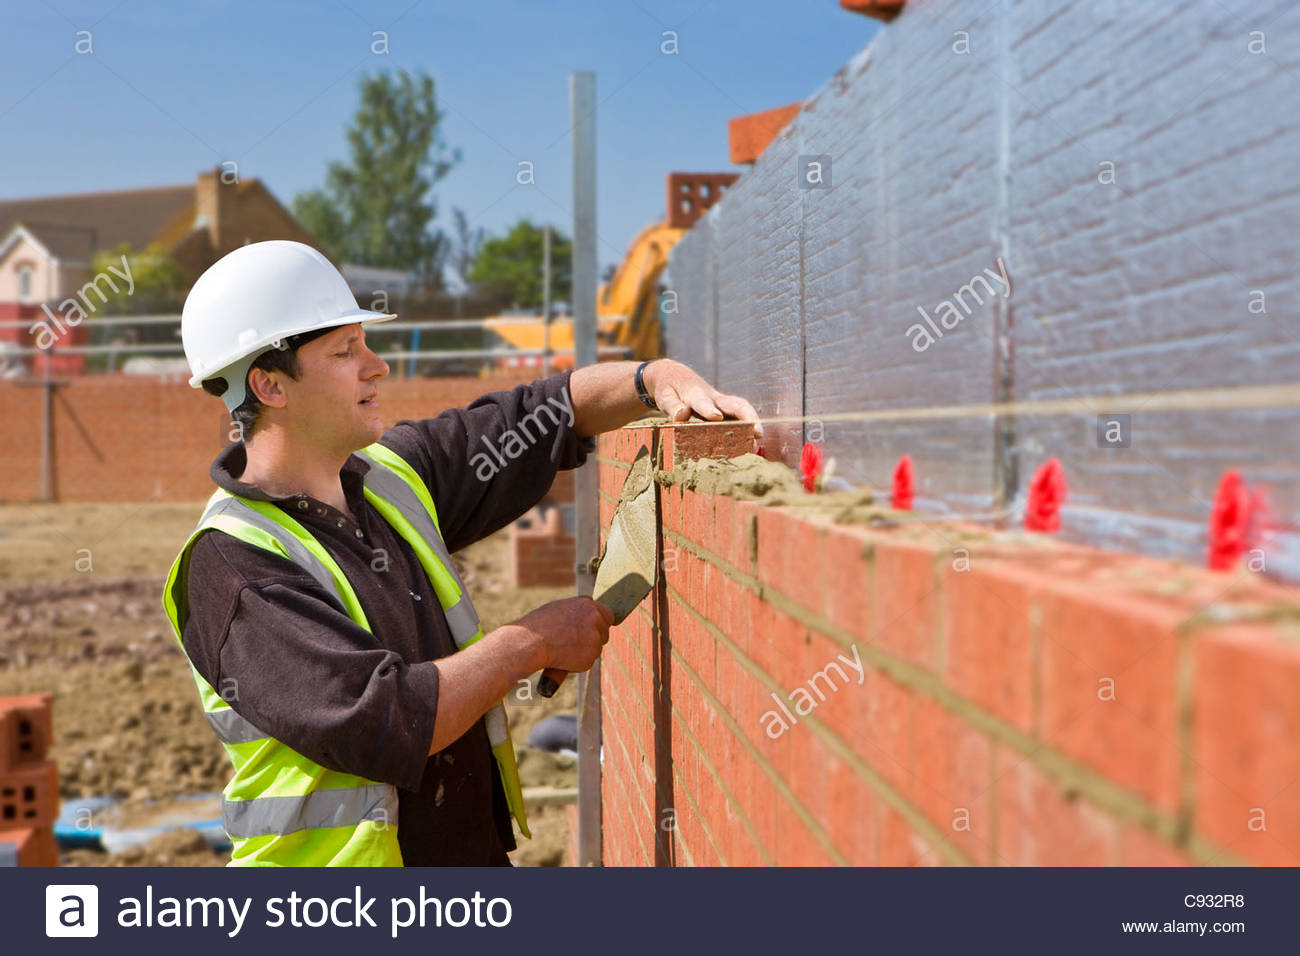 Brick Wall With Insulation Stock Photos Amp Brick Wall With